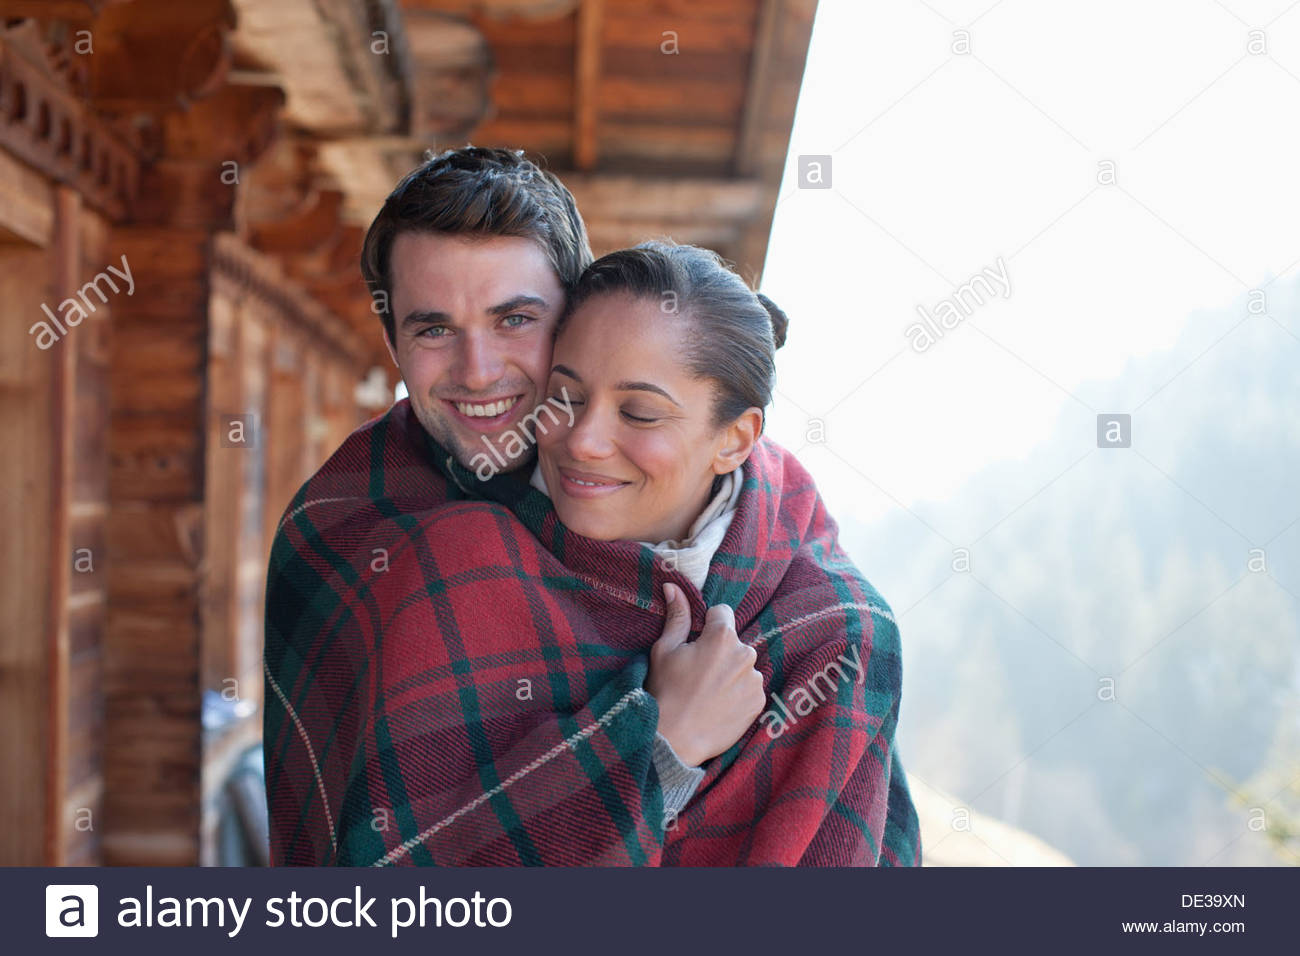 Portrait of smiling couple wrapped in a blanket on cabin porch - Stock Image